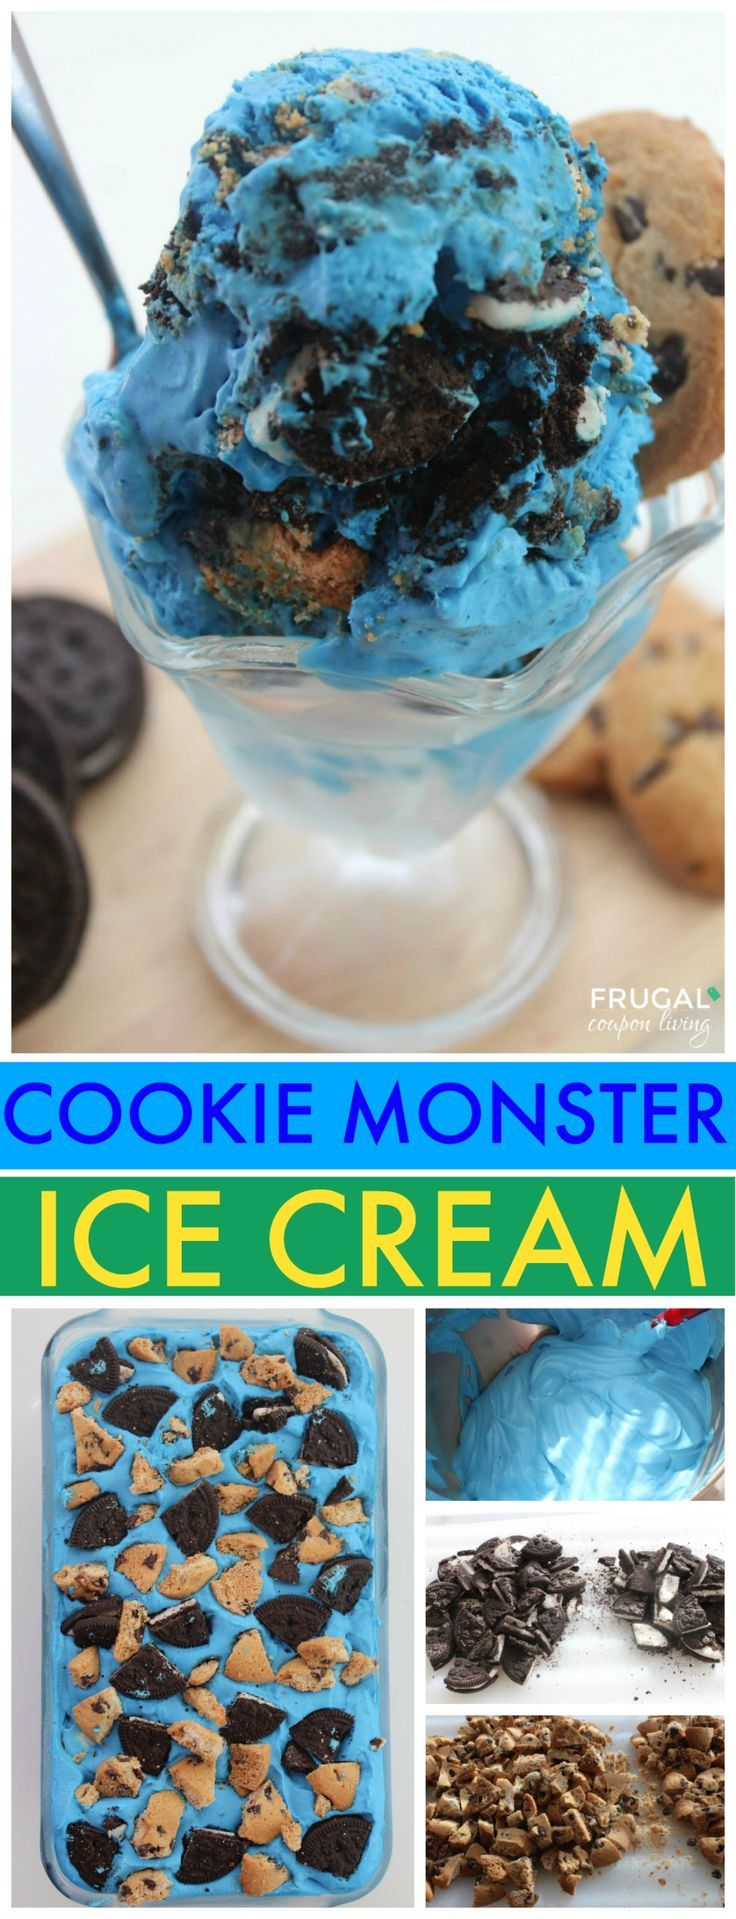 Have a cookie monster? Check out this cookie monster recipe - cookie lover ice cream on Frugal Coupon Living.